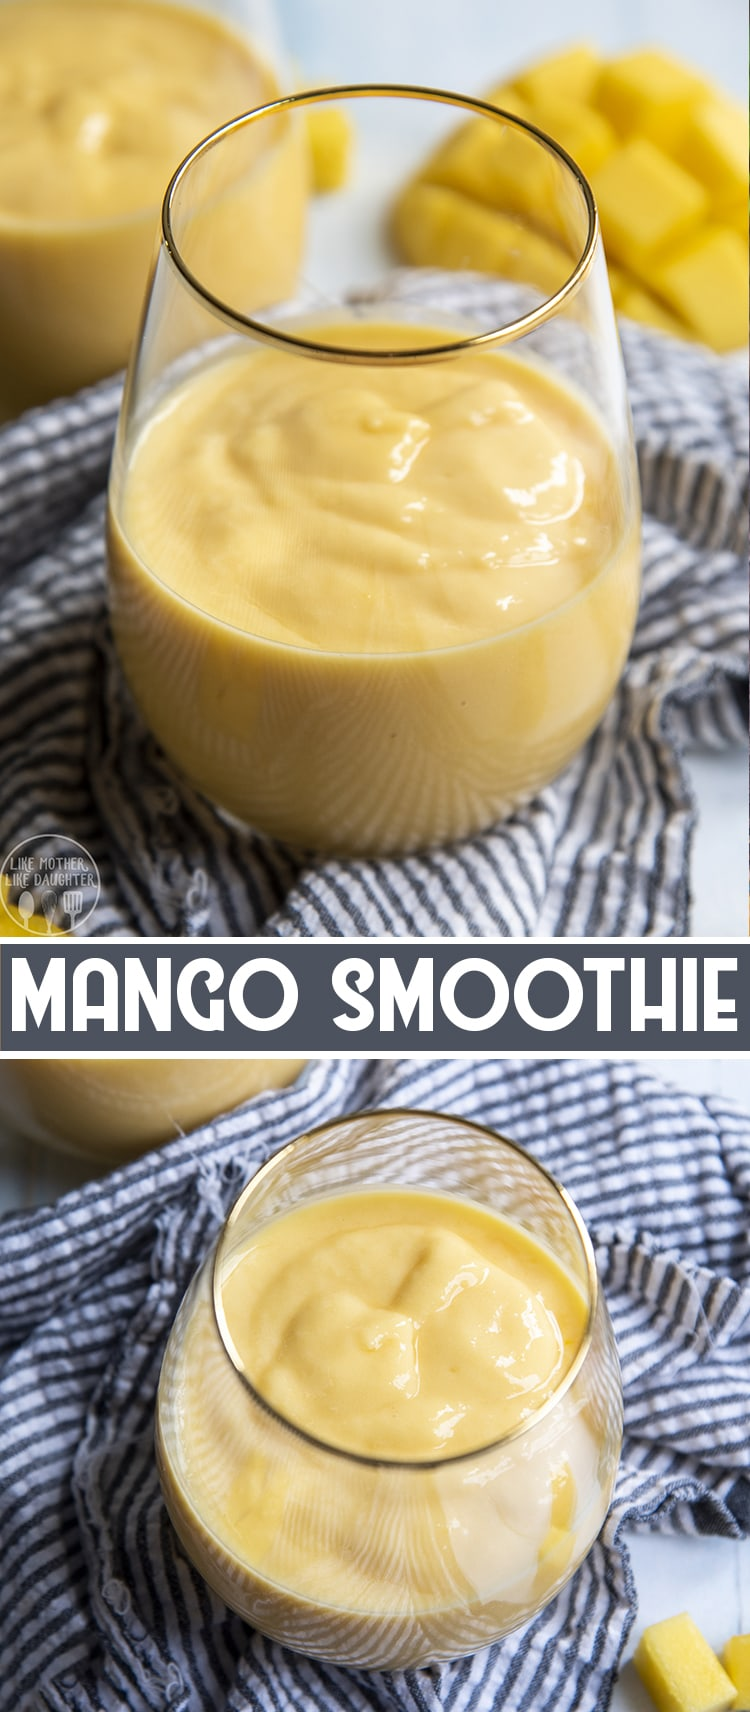 This delicious mango smoothie is so creamy and sweet, made with frozen mango pieces, juice, and yogurt. It's a refreshing way to start the day or to cool down with as an afternoon snack.